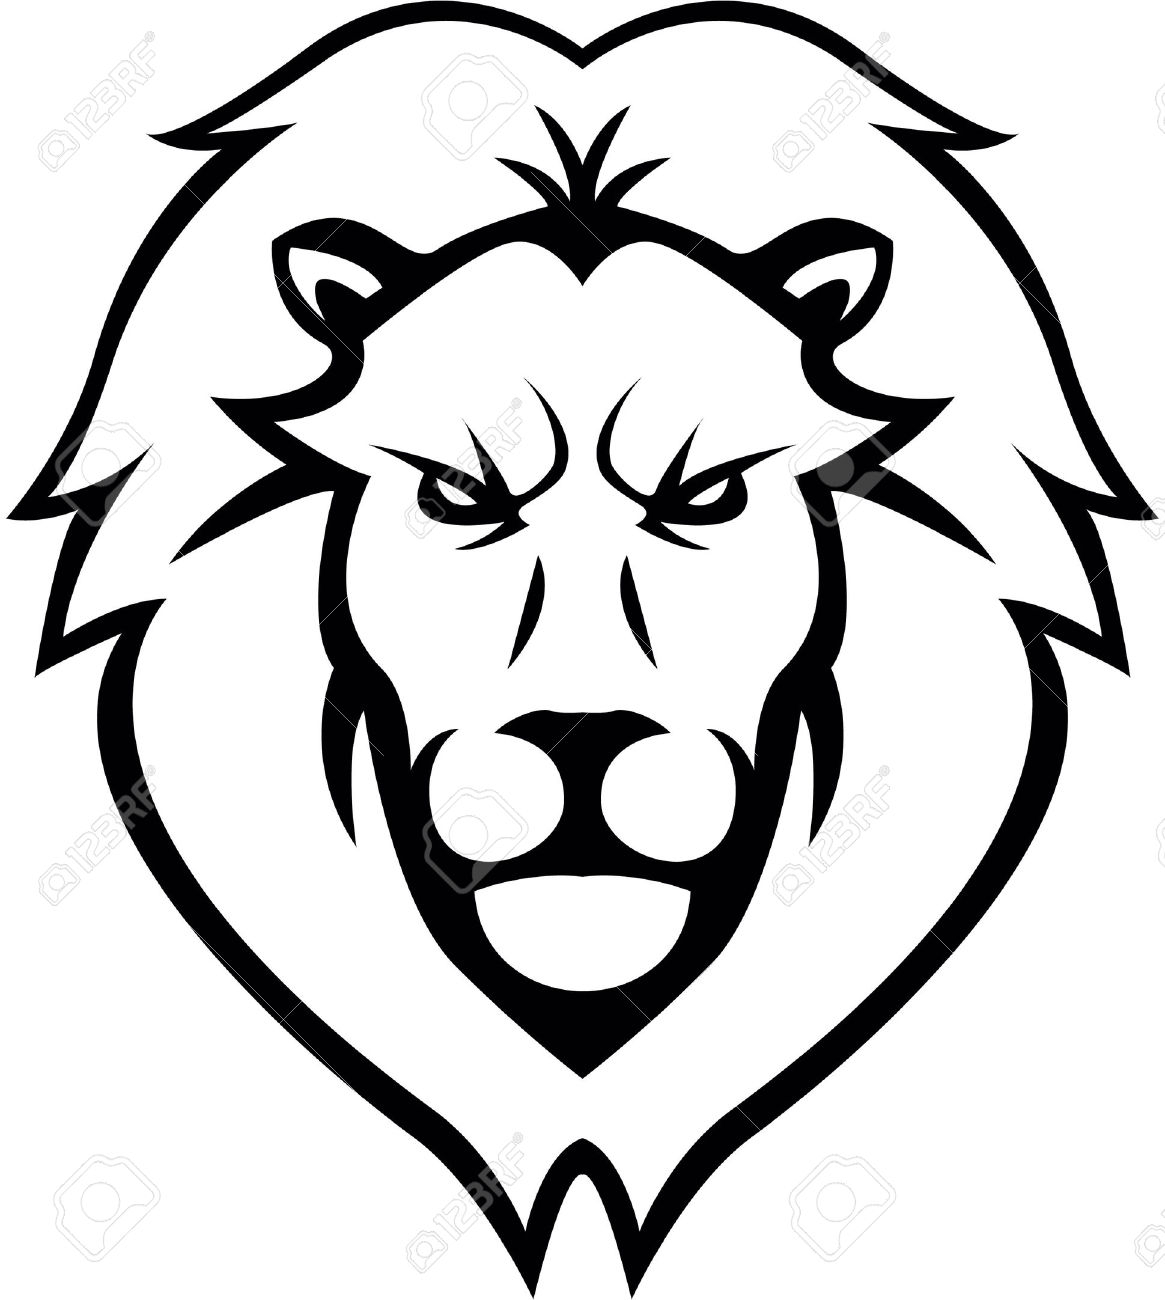 1165x1300 Outline Image Of Lion Face